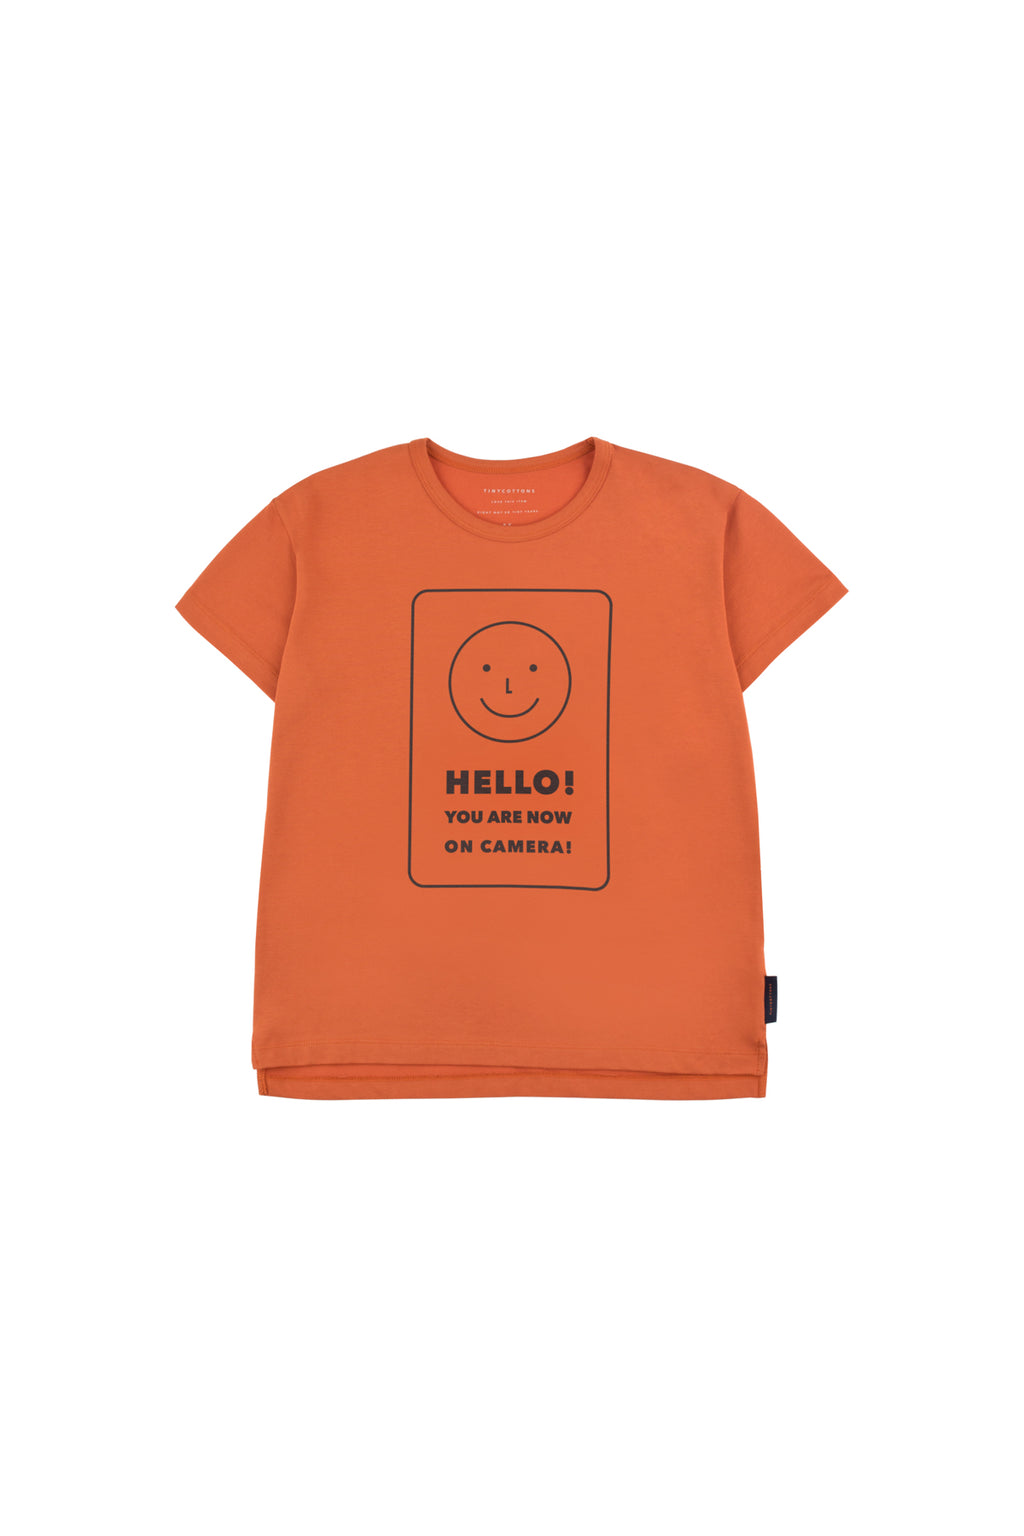 Tiny Cottons Hello Tee